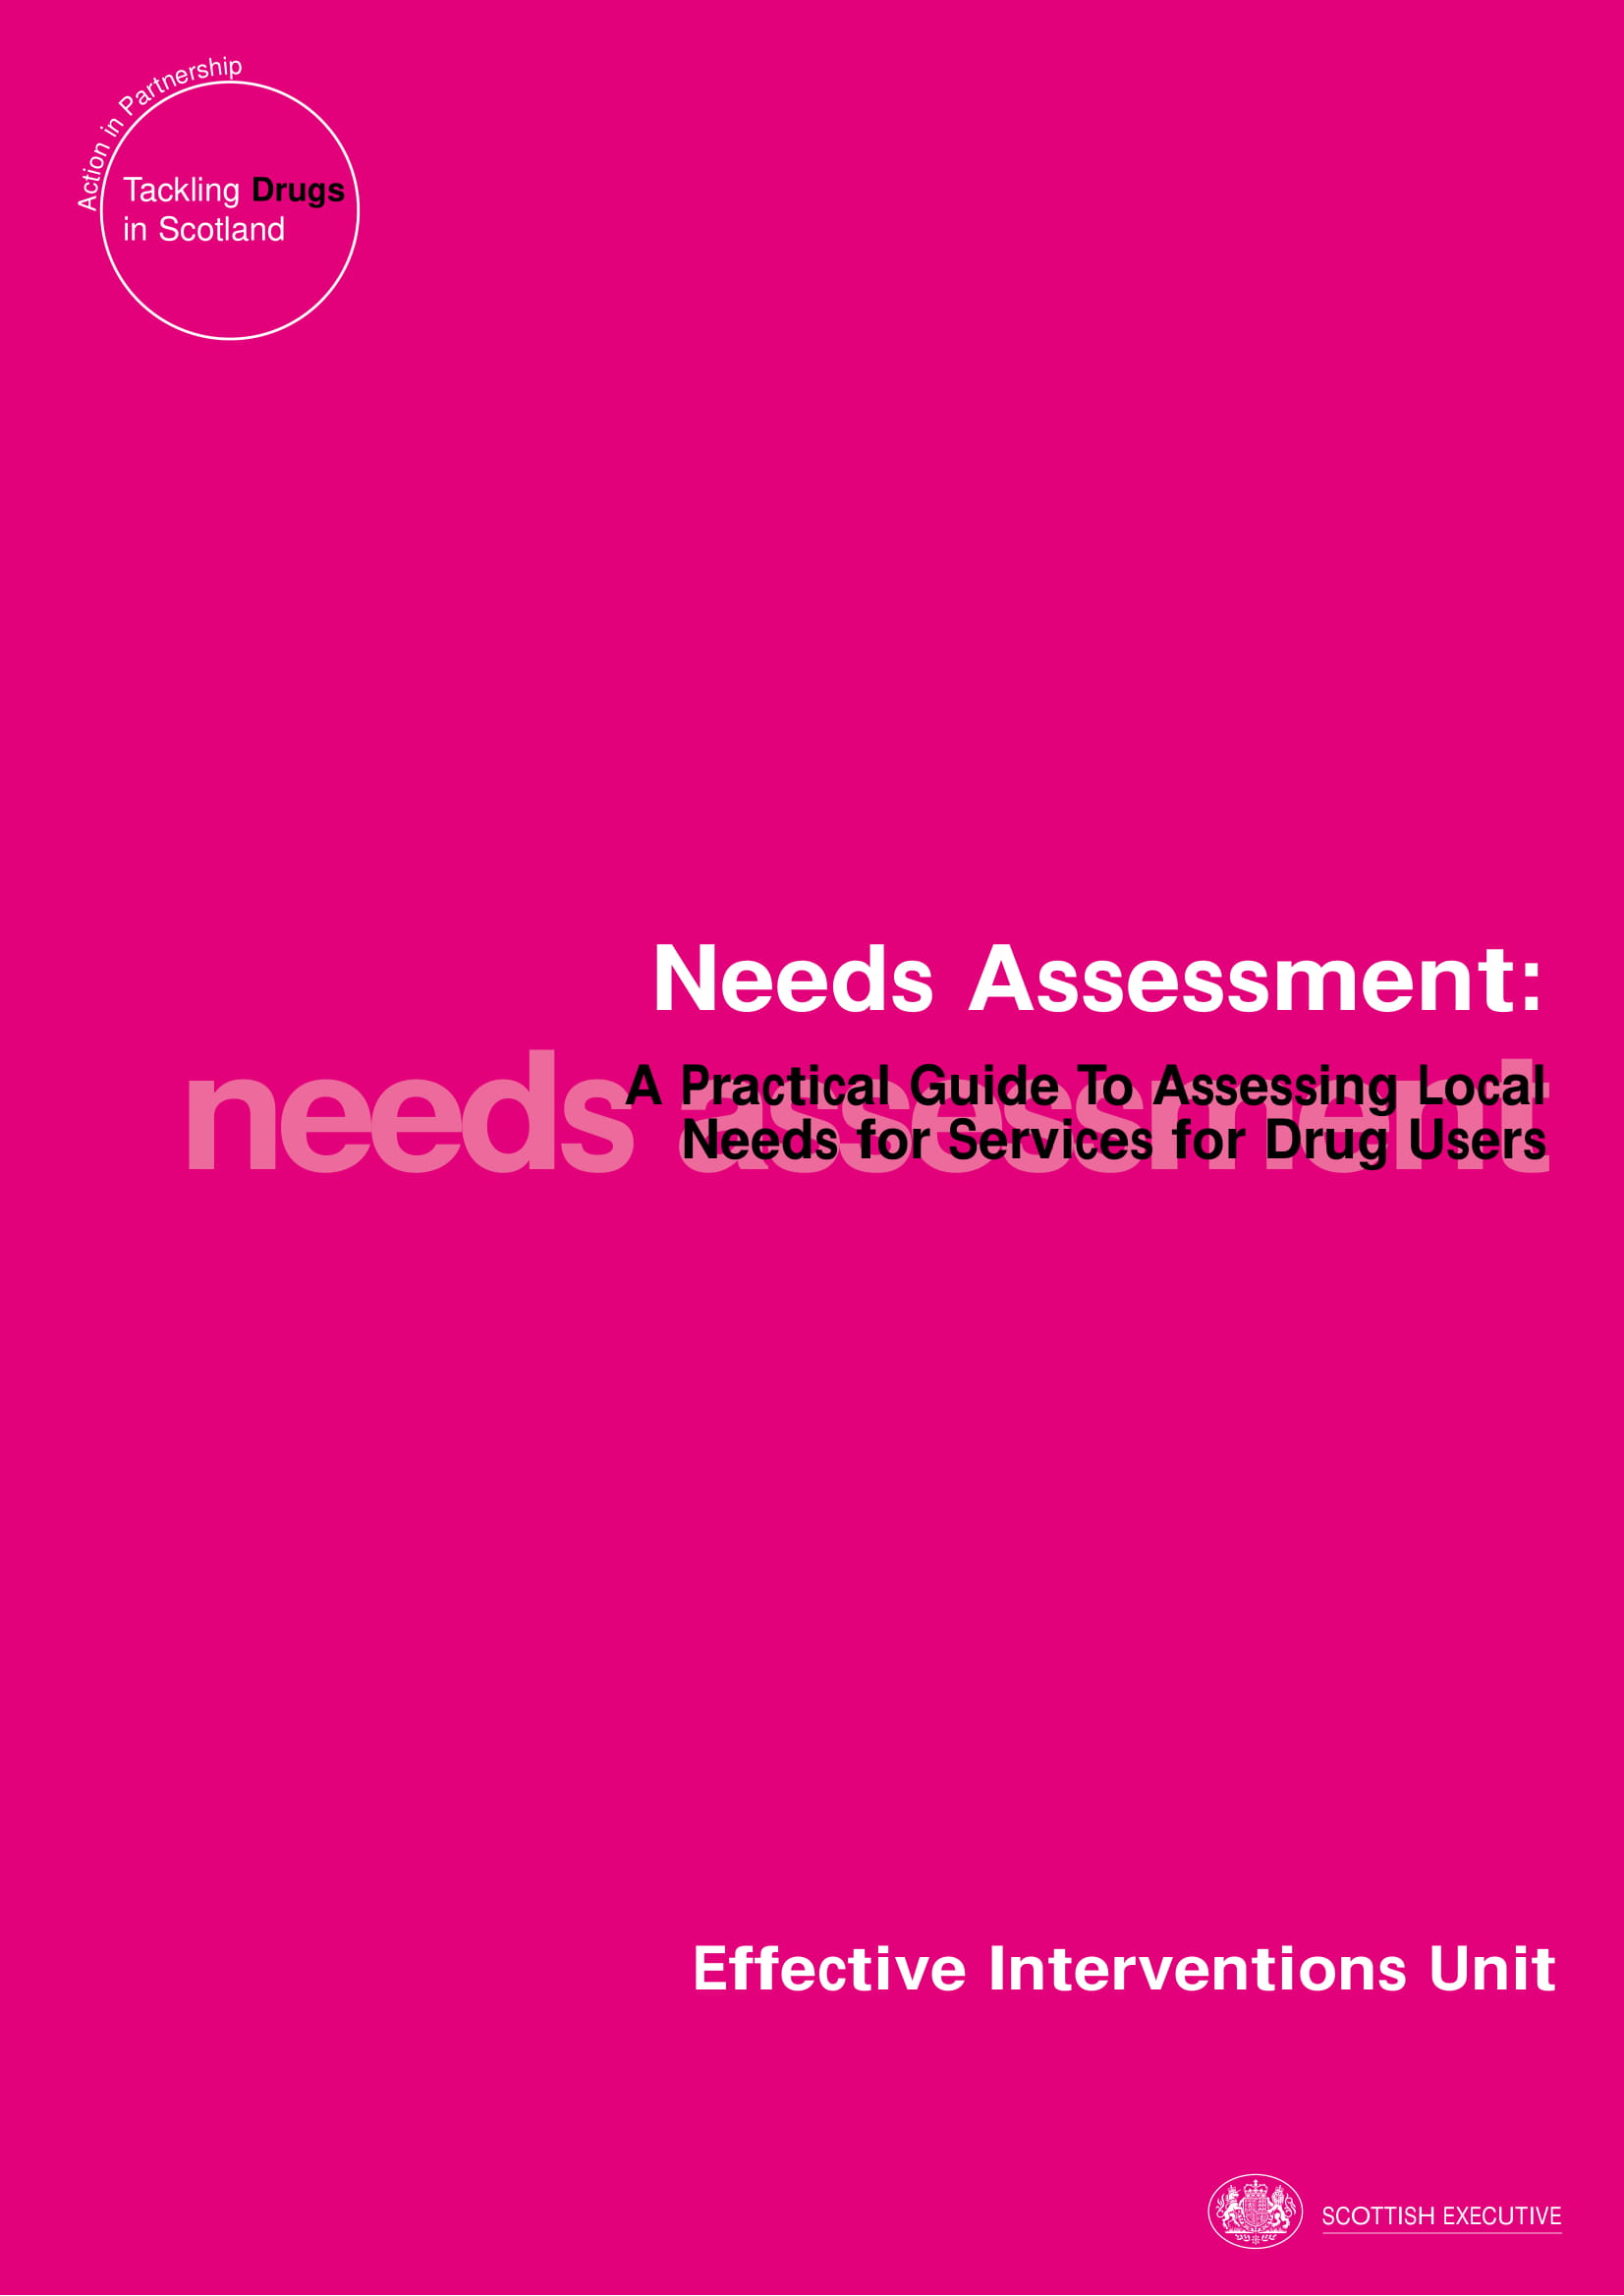 needs assessment practical guide example 01